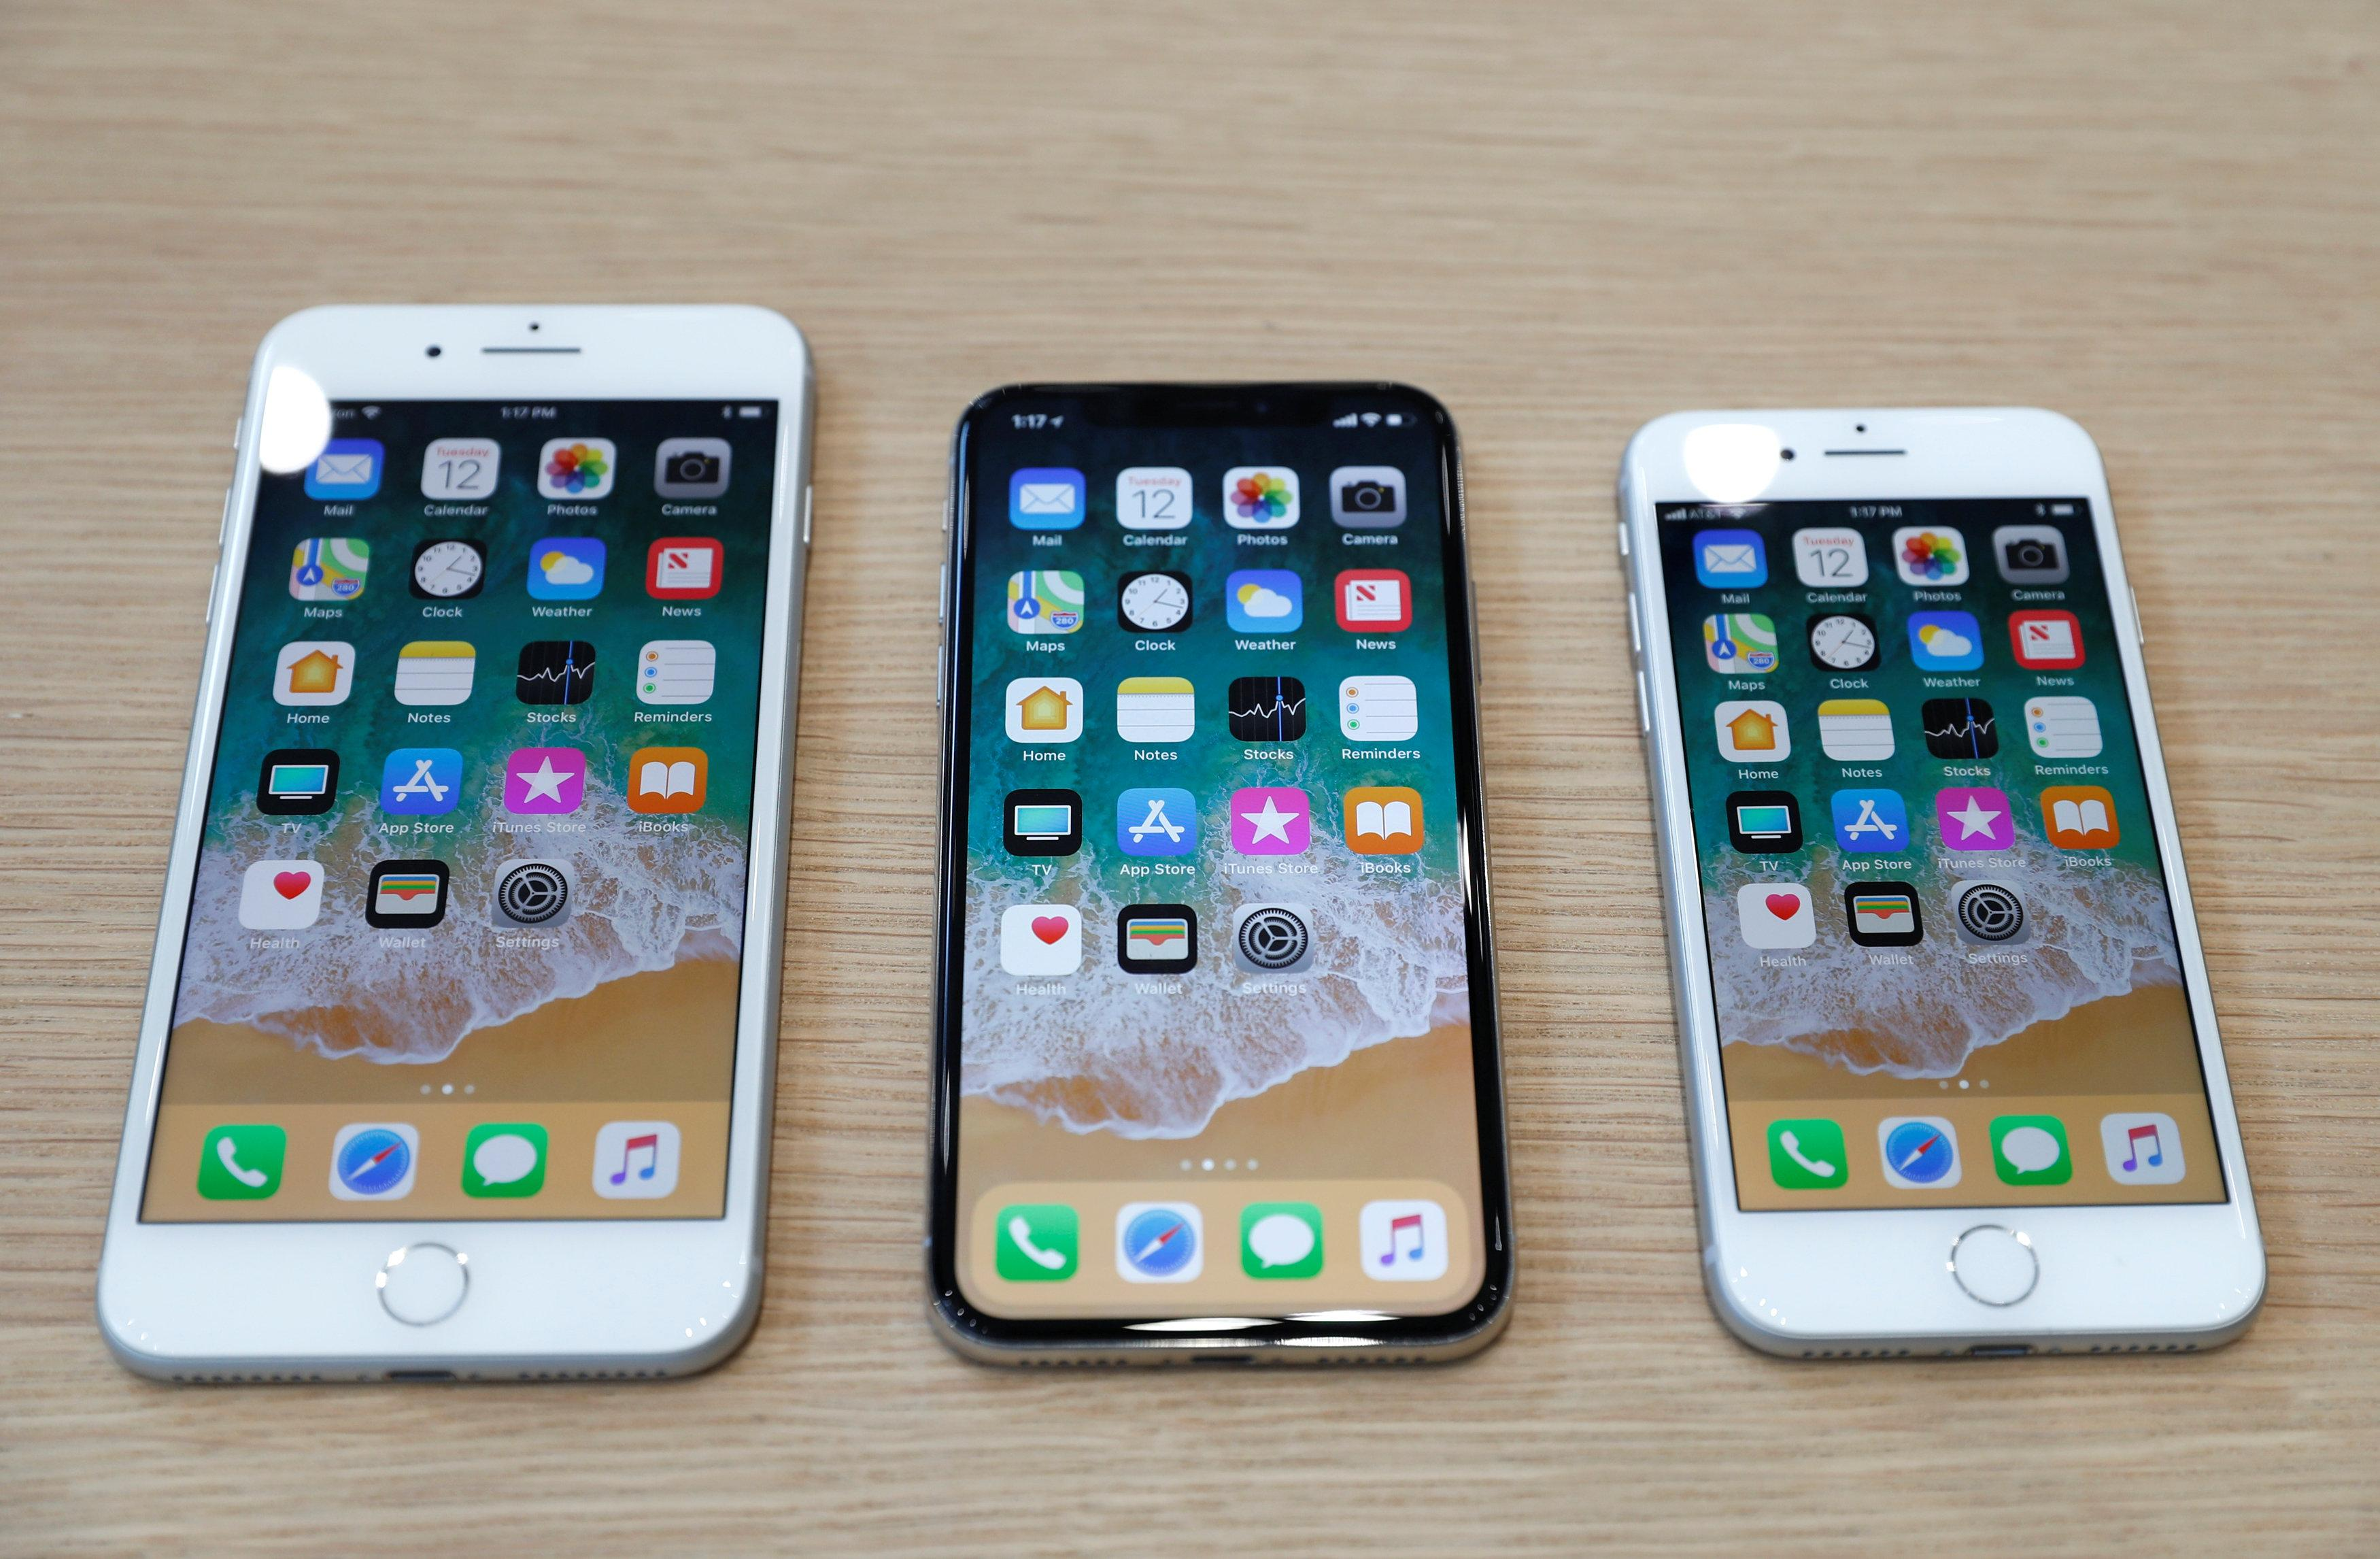 (L-R) iPhone 8 Plus, iPhone X and iPhone 8 models are displayed during an Apple launch event in Cupertino, California, U.S., September 12, 2017. Stephen Lam